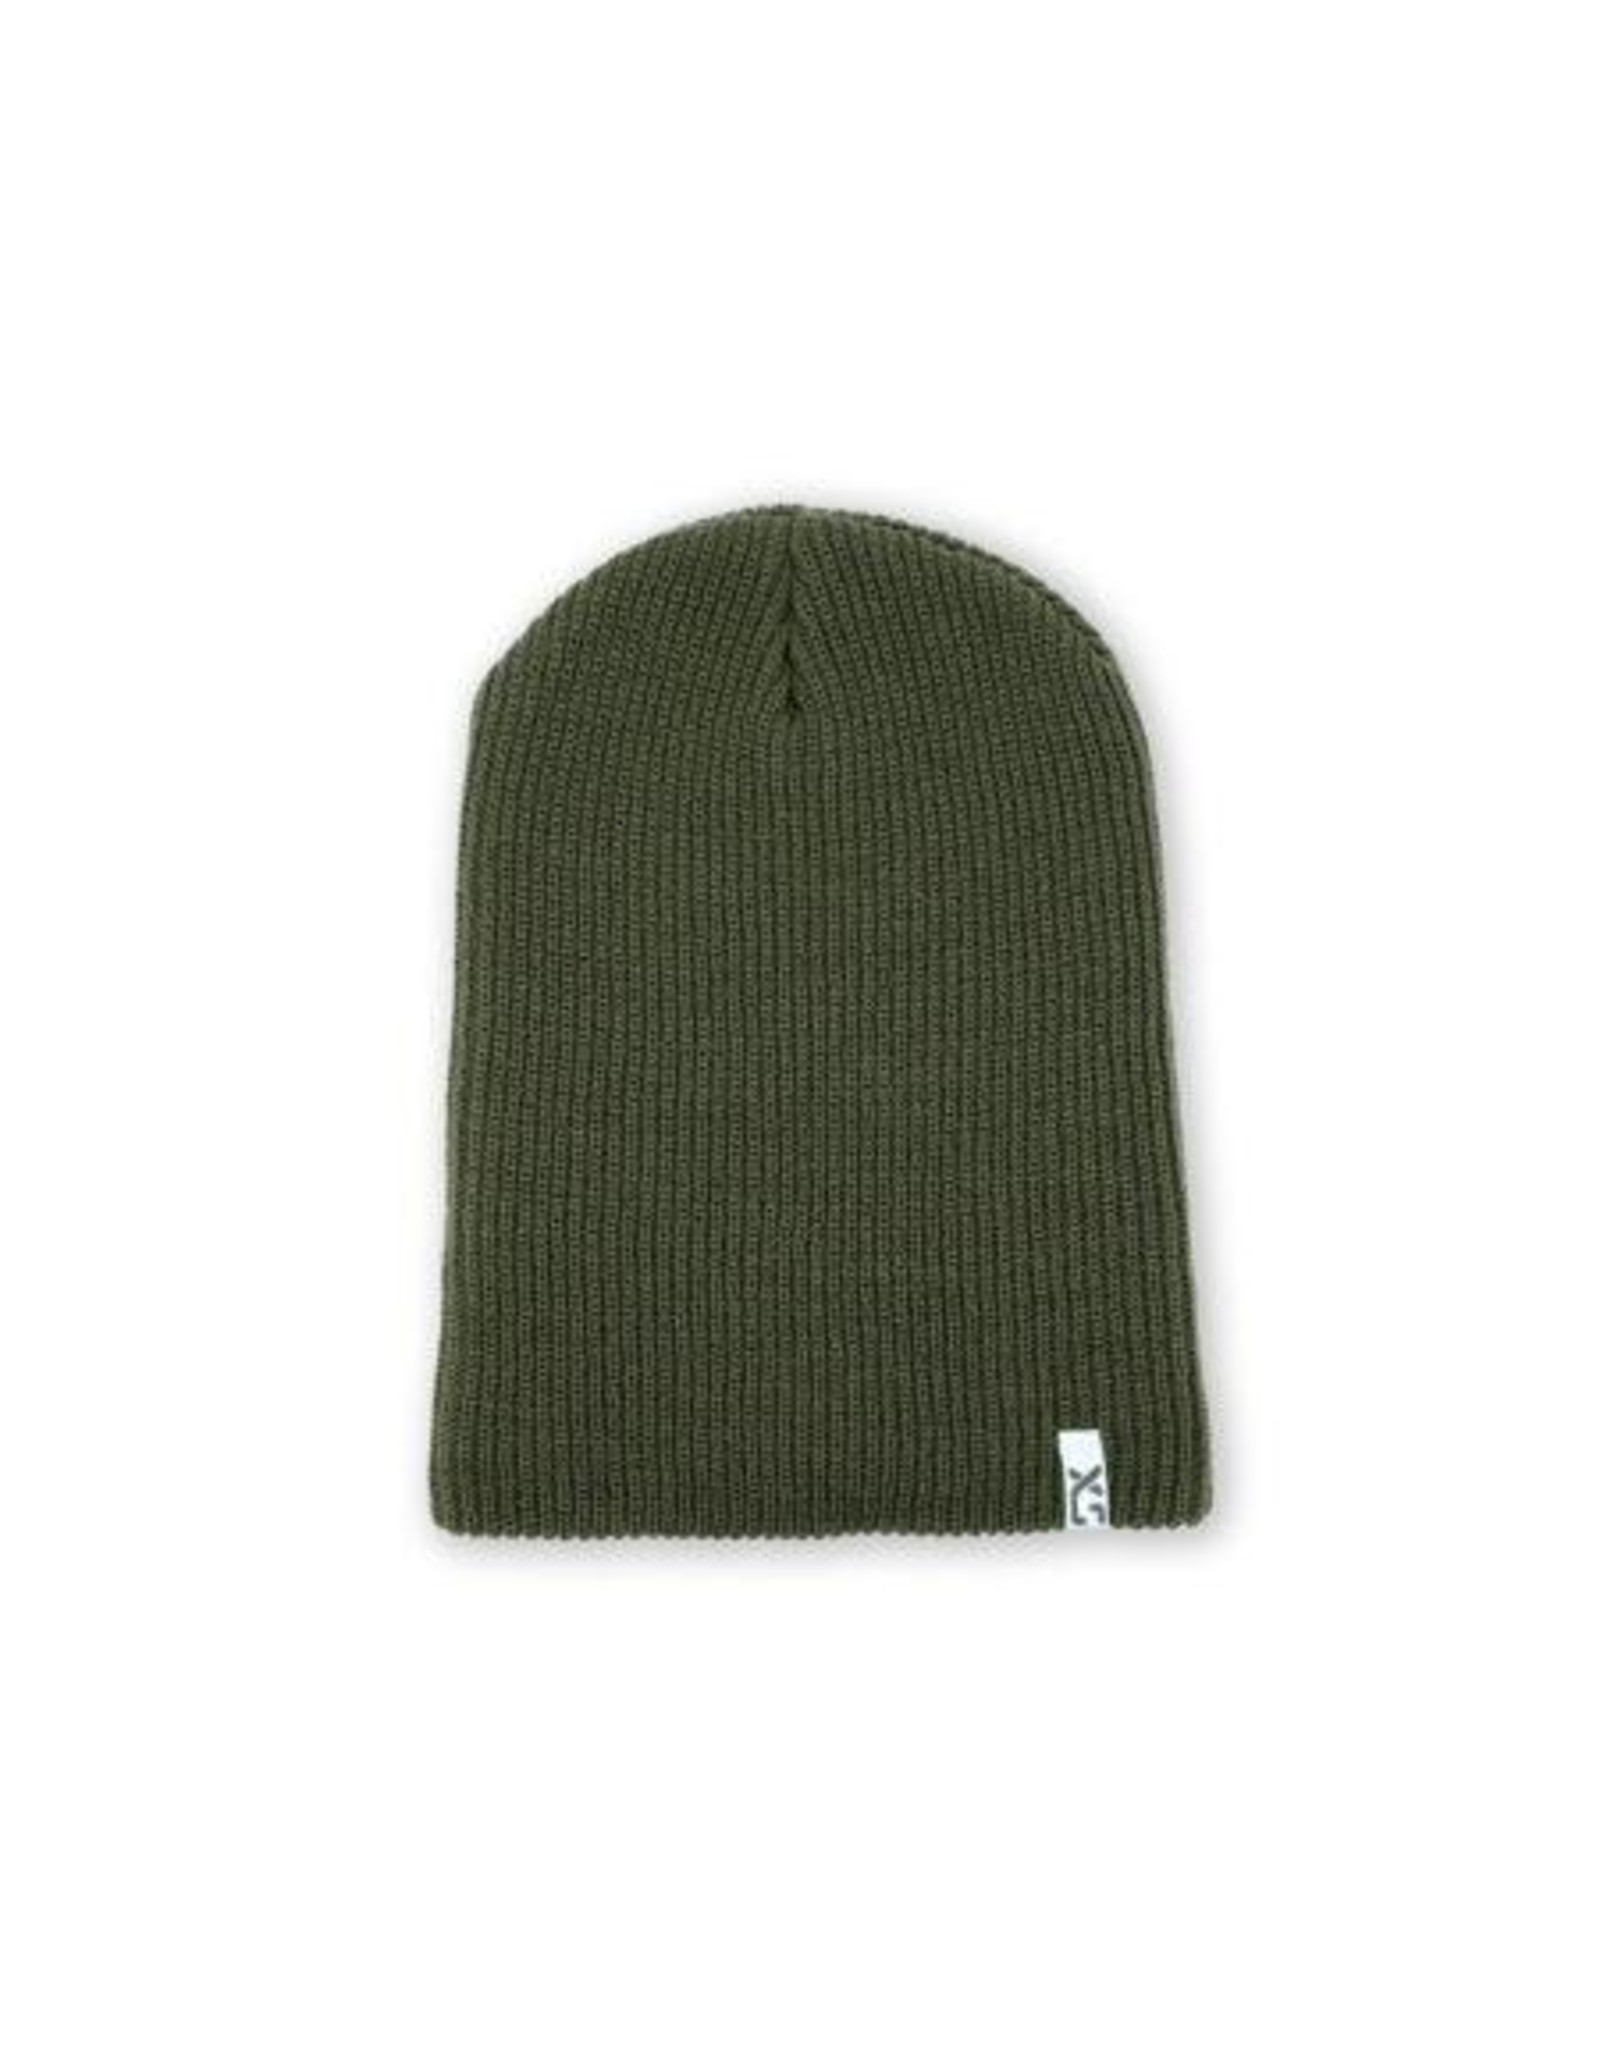 XS Unified - Classic Slouchy Beanie